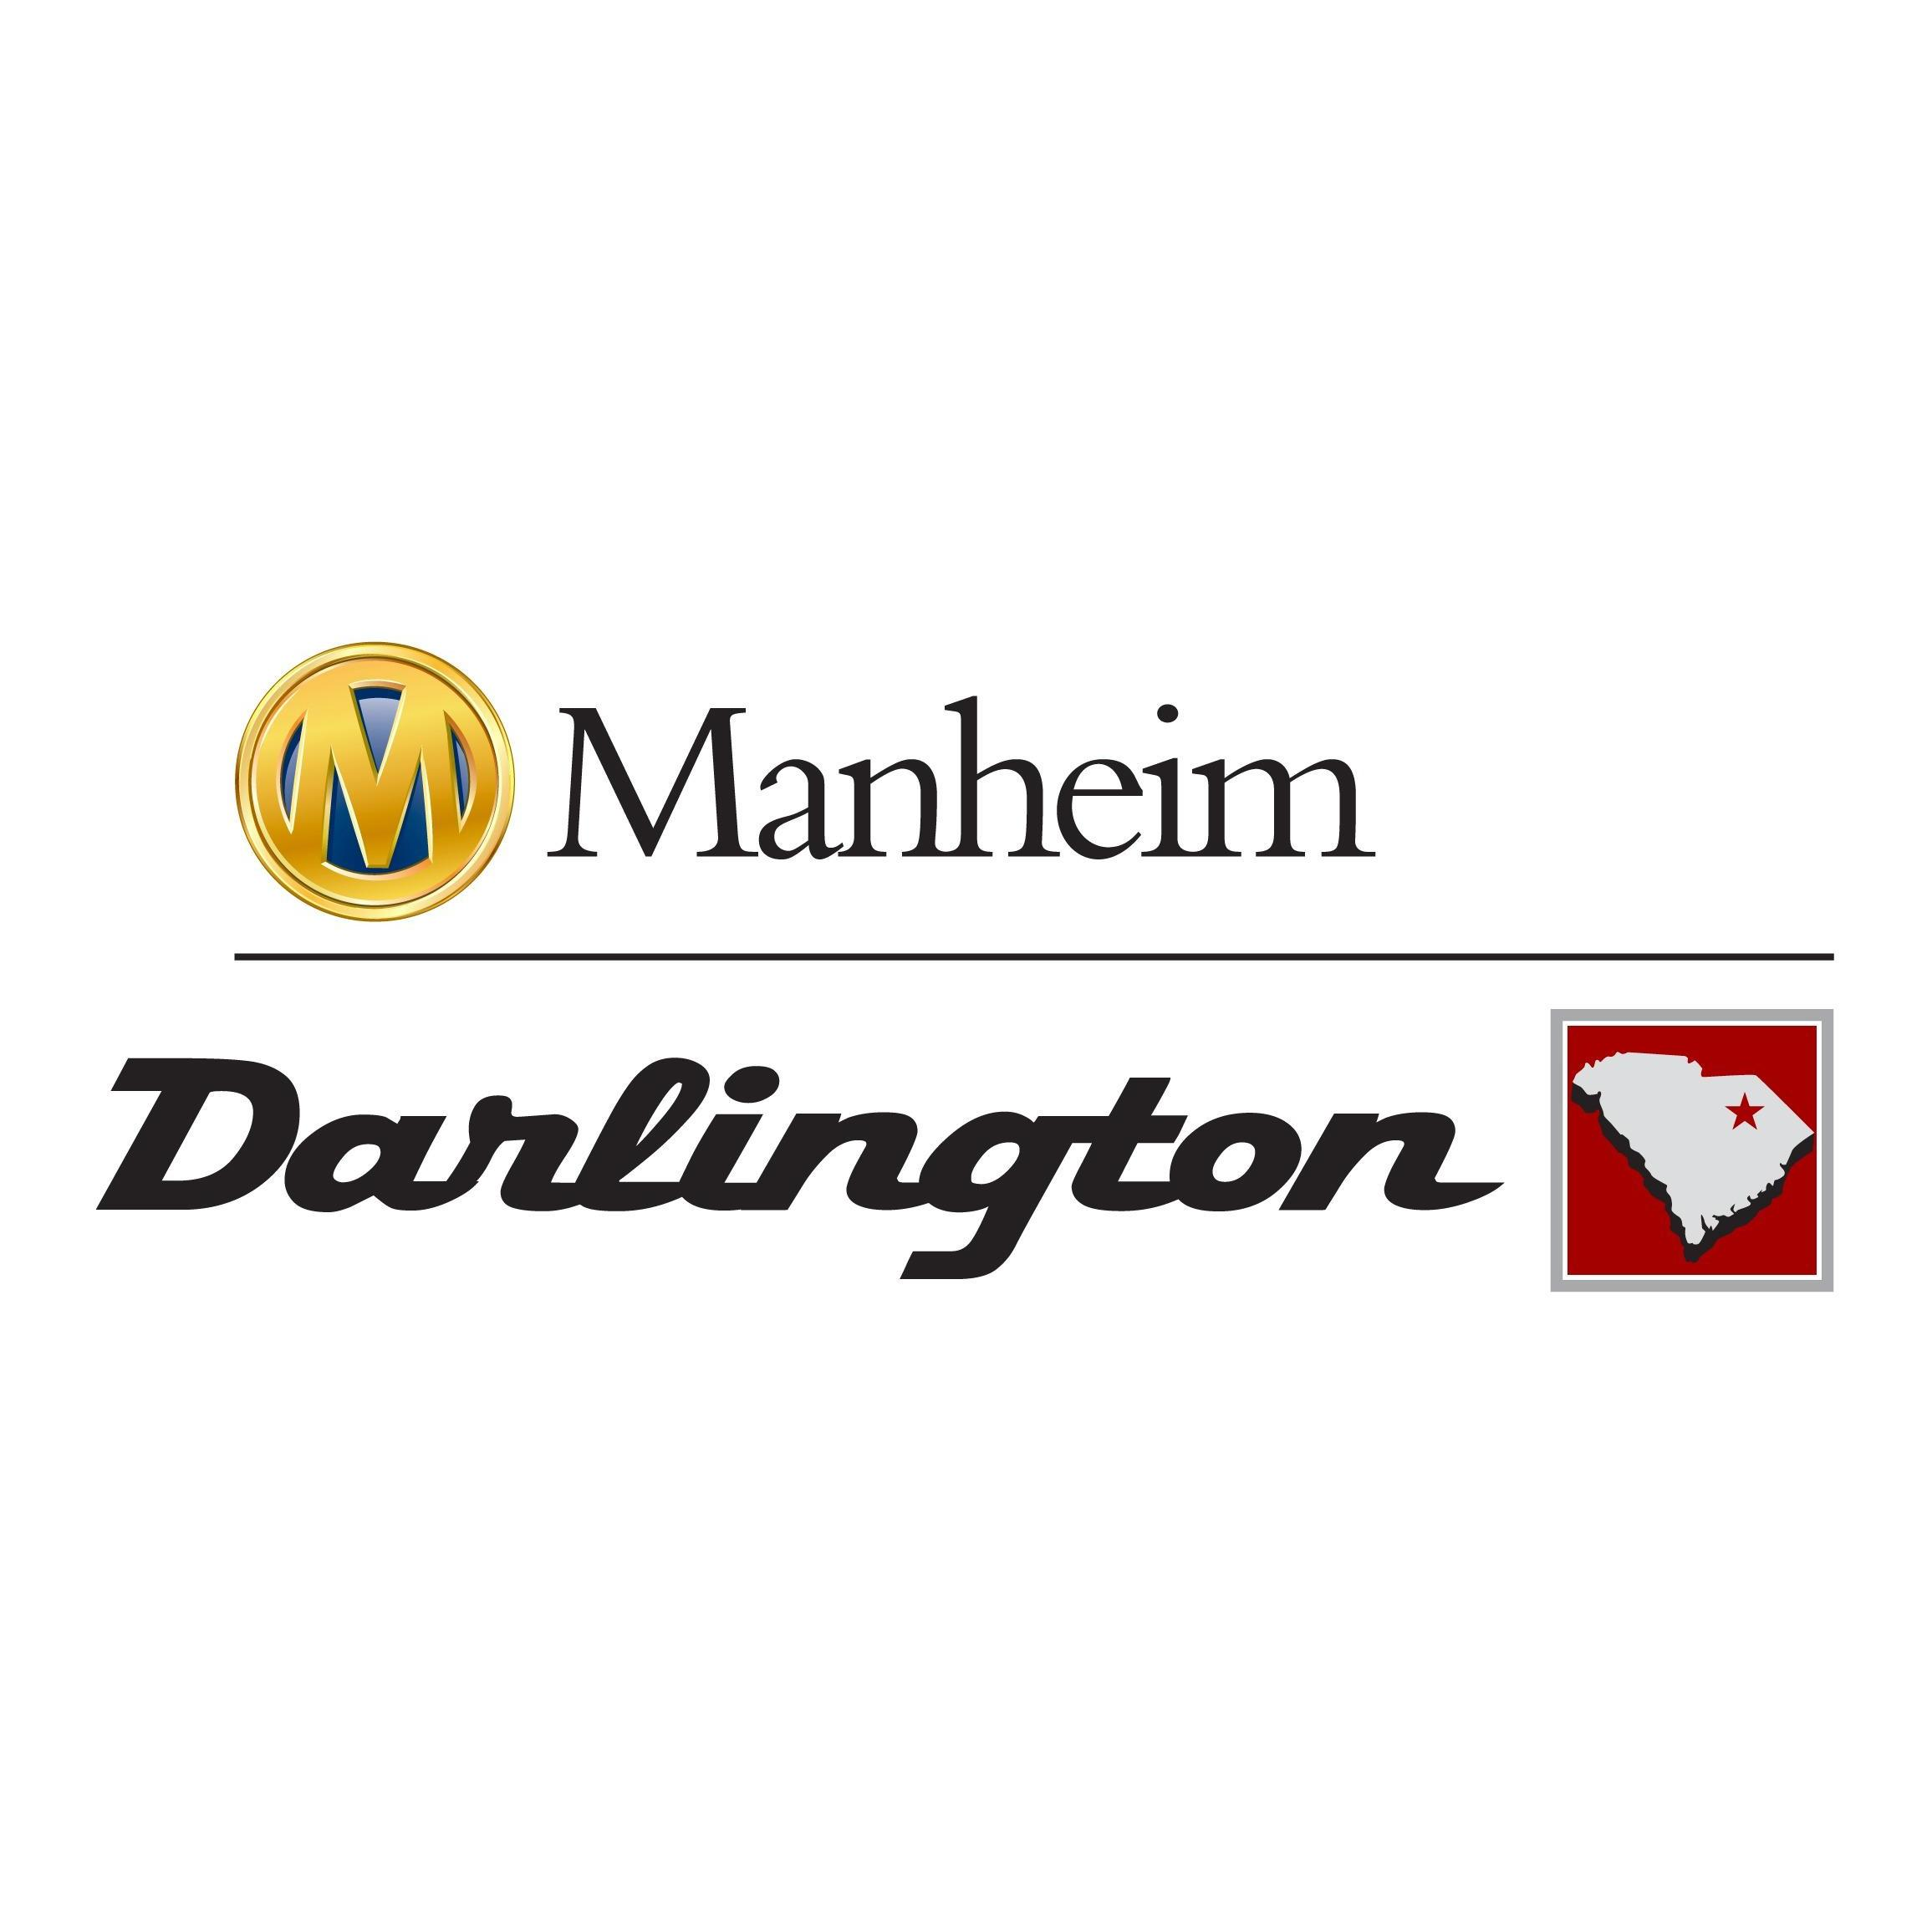 Manheim Darlington